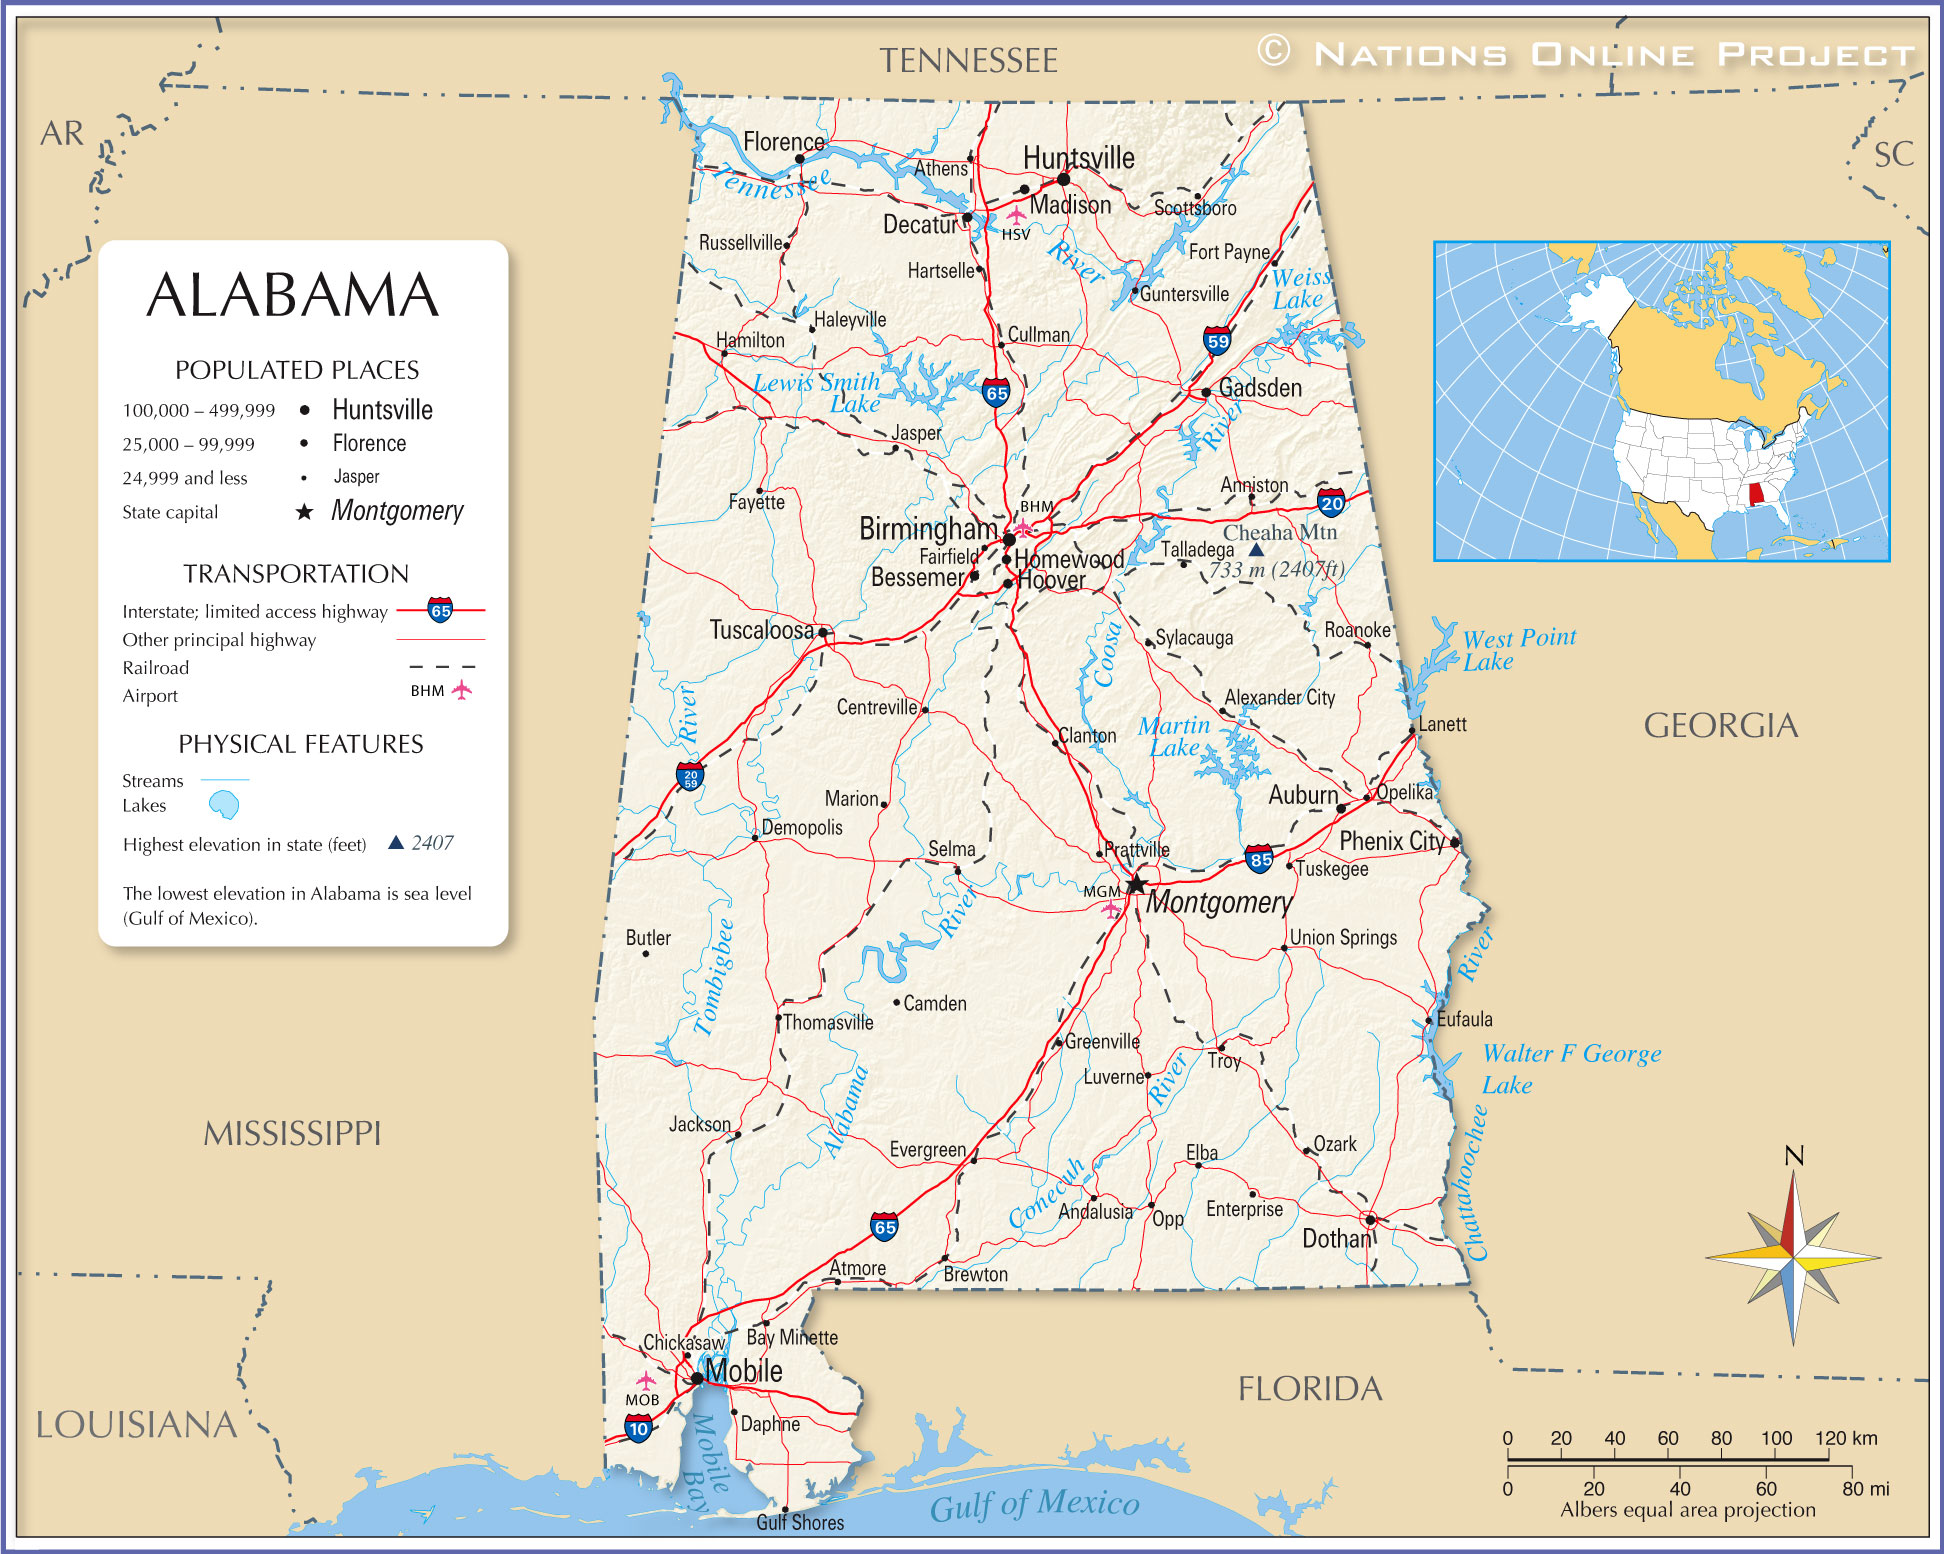 Maps of Alabama State, USA - Nations Online Project Map Of Alabama Usa on map of nevada usa, map of georgia usa, map of st. vincent and the grenadines, map of america usa, map of san antonio usa, map of northeastern usa, map of northwestern usa, map of midwest states usa, map of southern usa, map of the south usa, map of carolinas usa, map delaware usa, map arkansas usa, map of washington dc usa, map of richmond usa, map of mexico usa, map of southeast usa, map of boston usa, colorado map usa, map of pacific northwest usa,